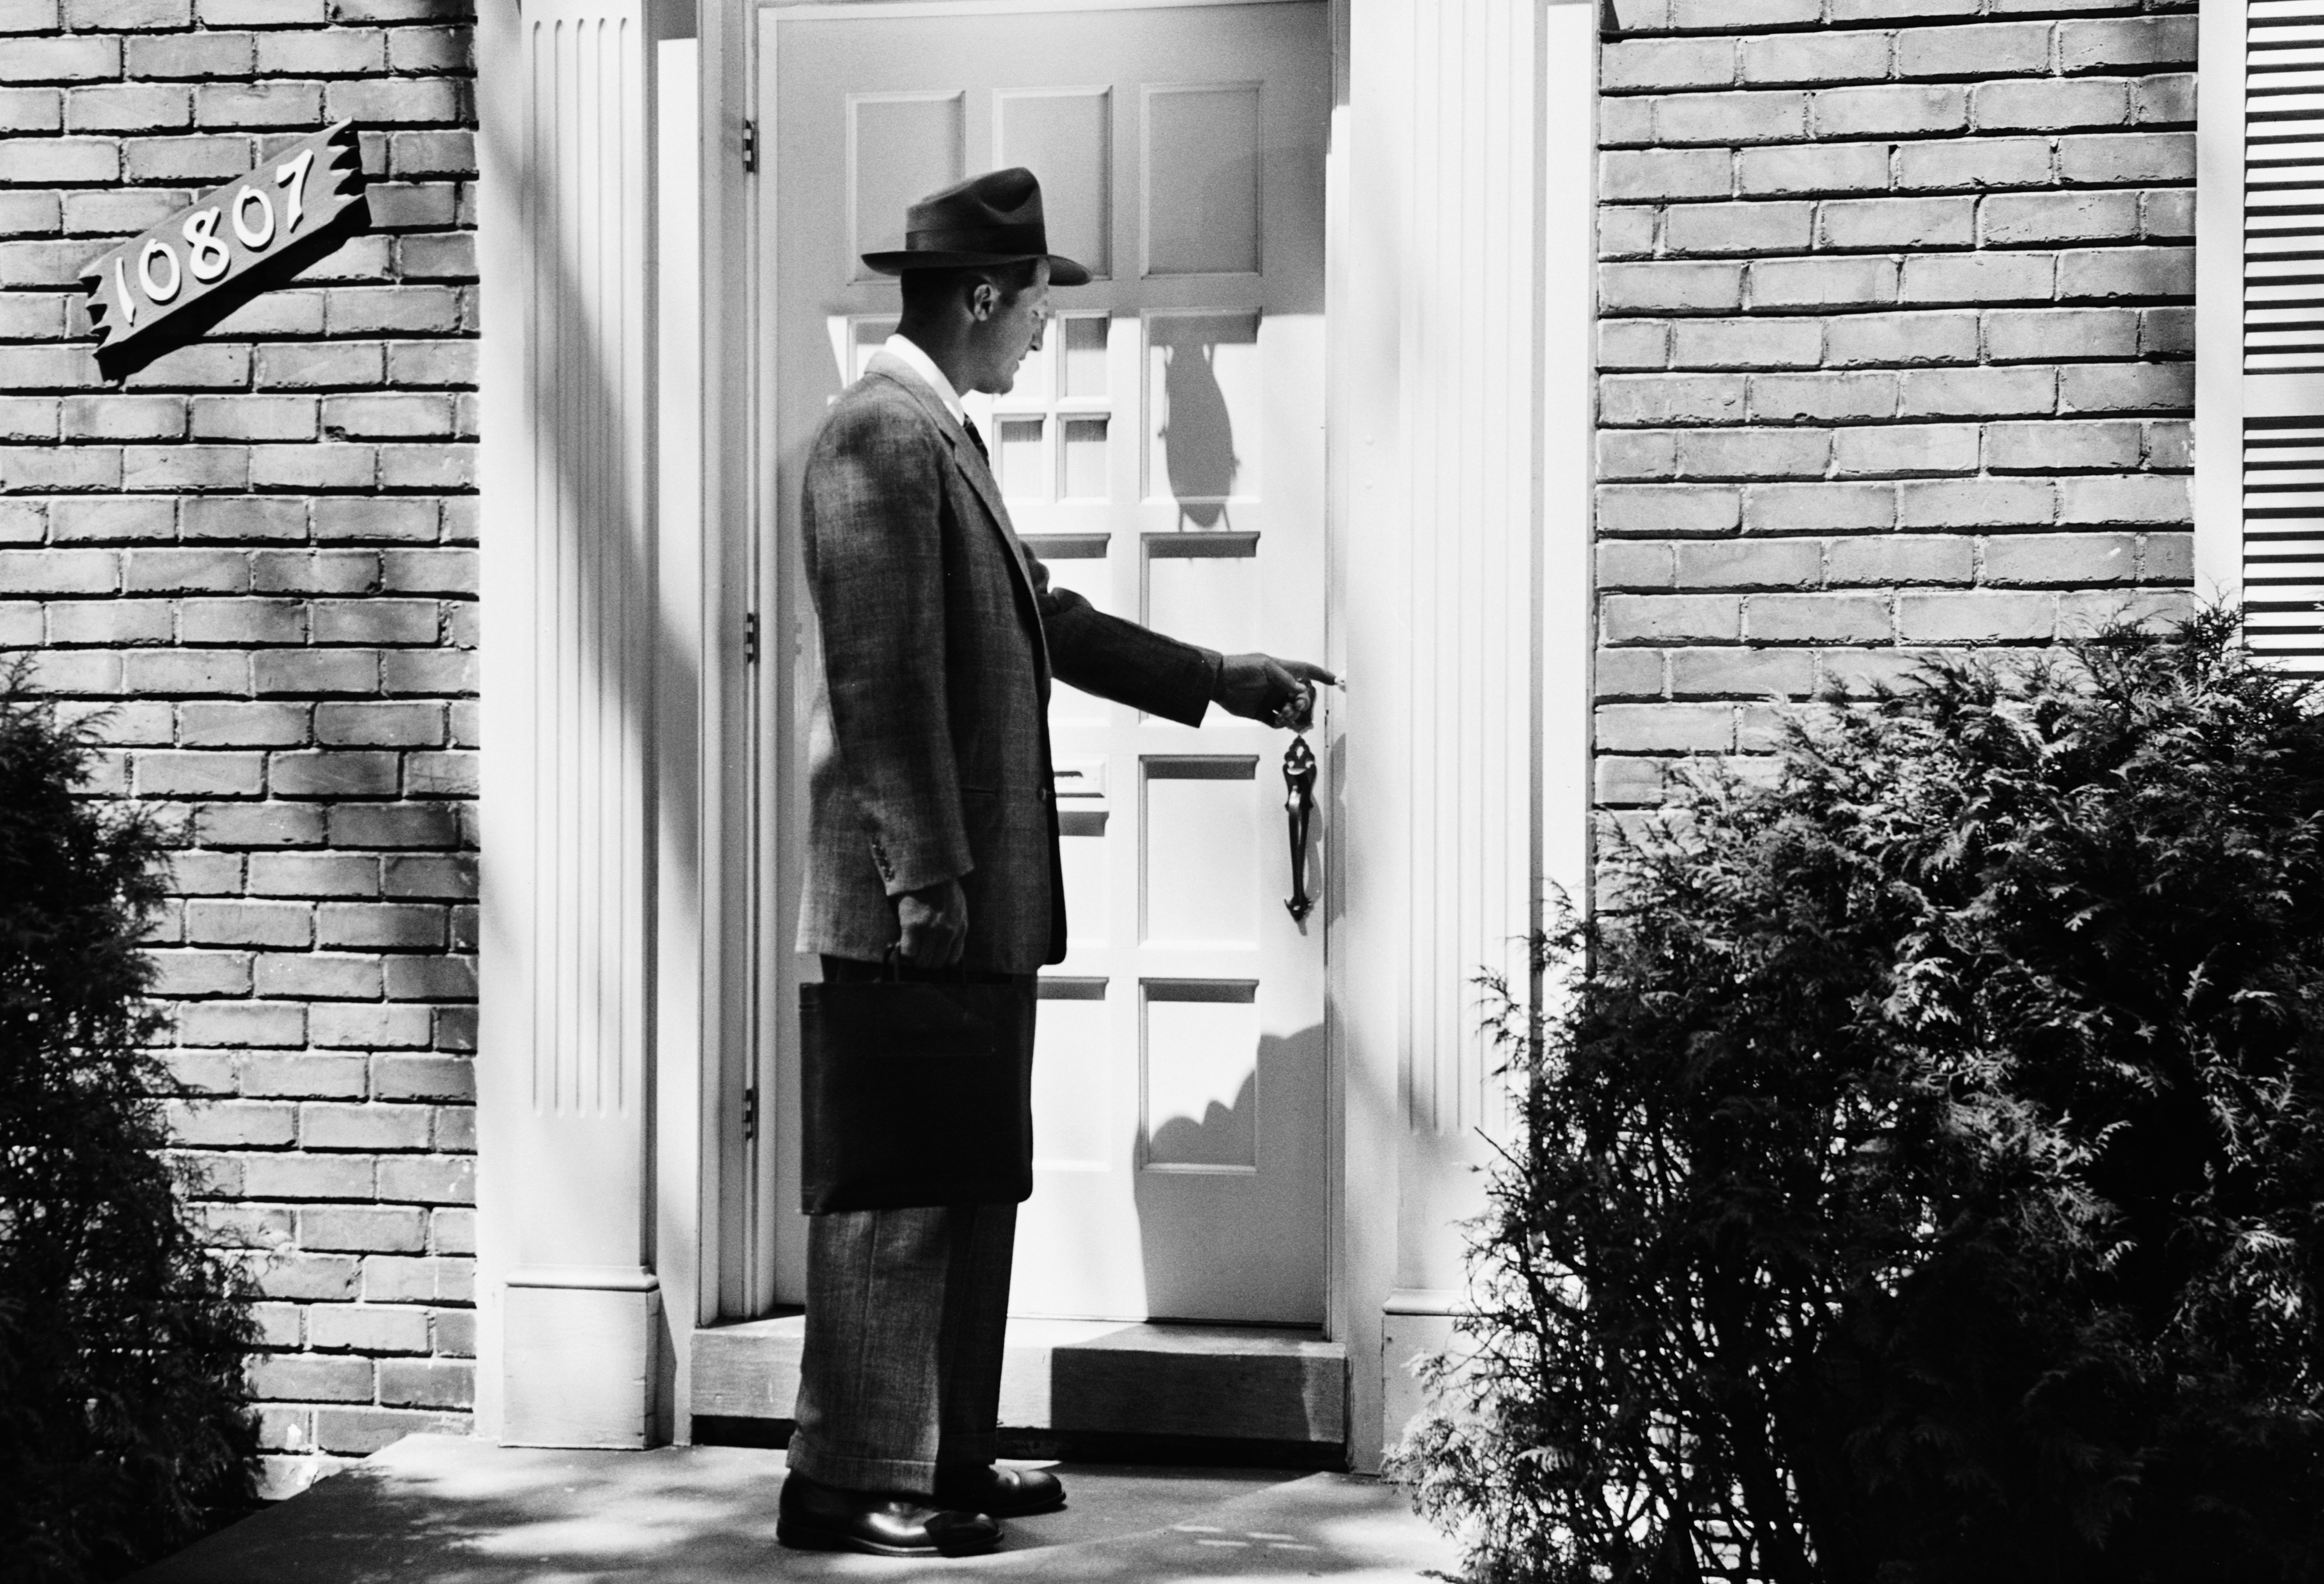 A man ringing the doorbell of a house in 1952.